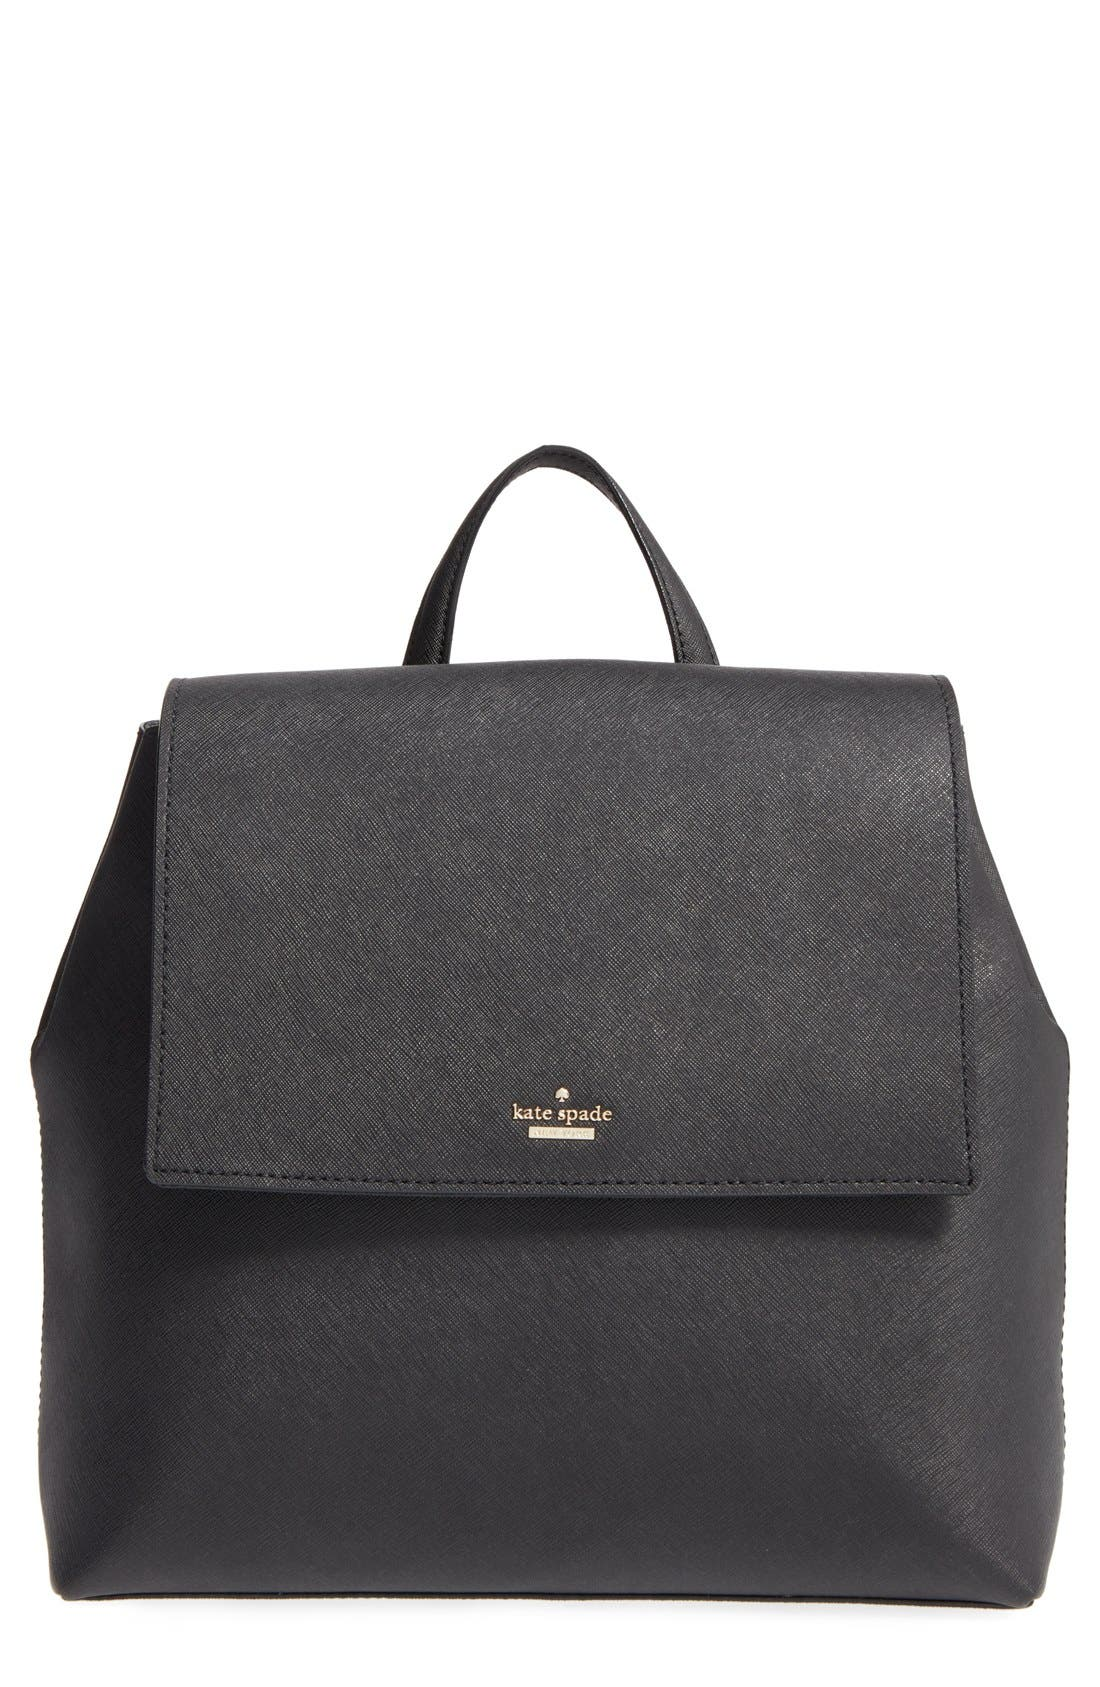 'cameron street - neema' leather backpack,                             Main thumbnail 1, color,                             001